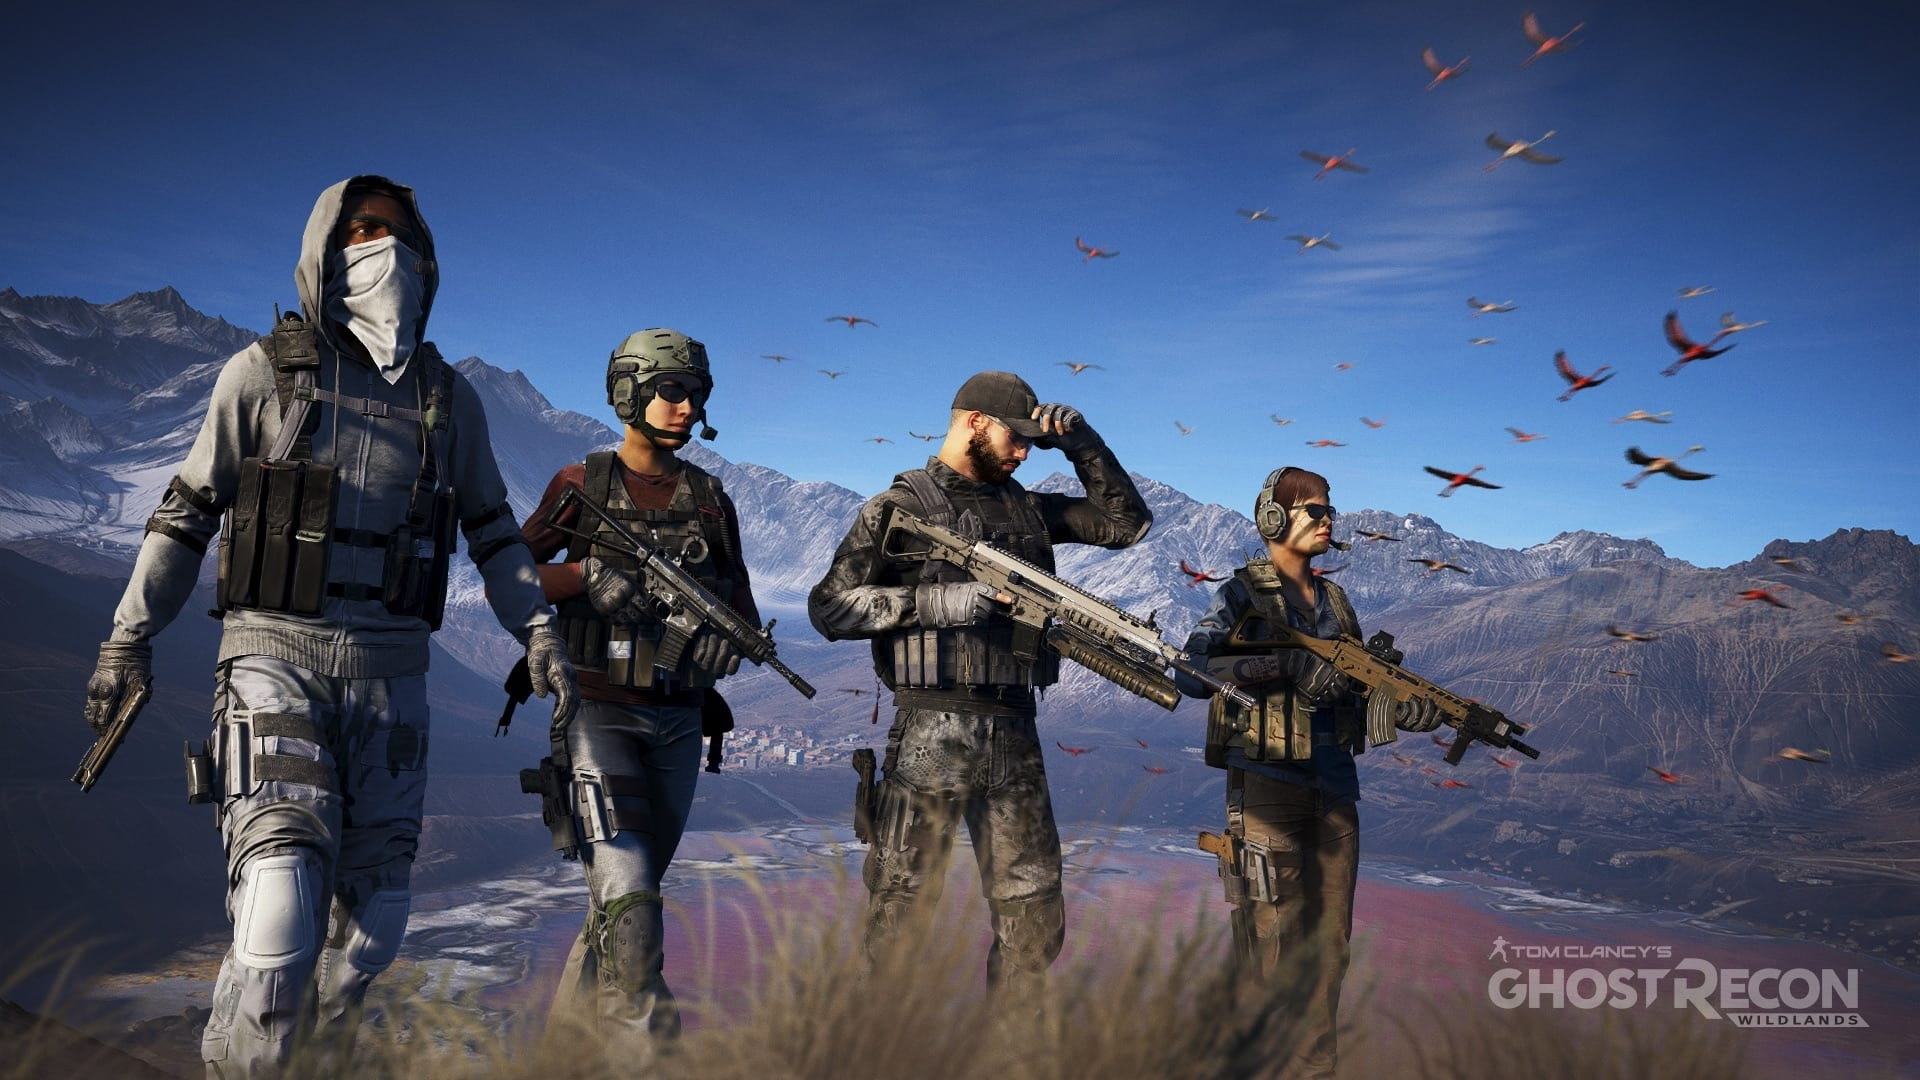 Ghost Recon Wildlands: a story about team